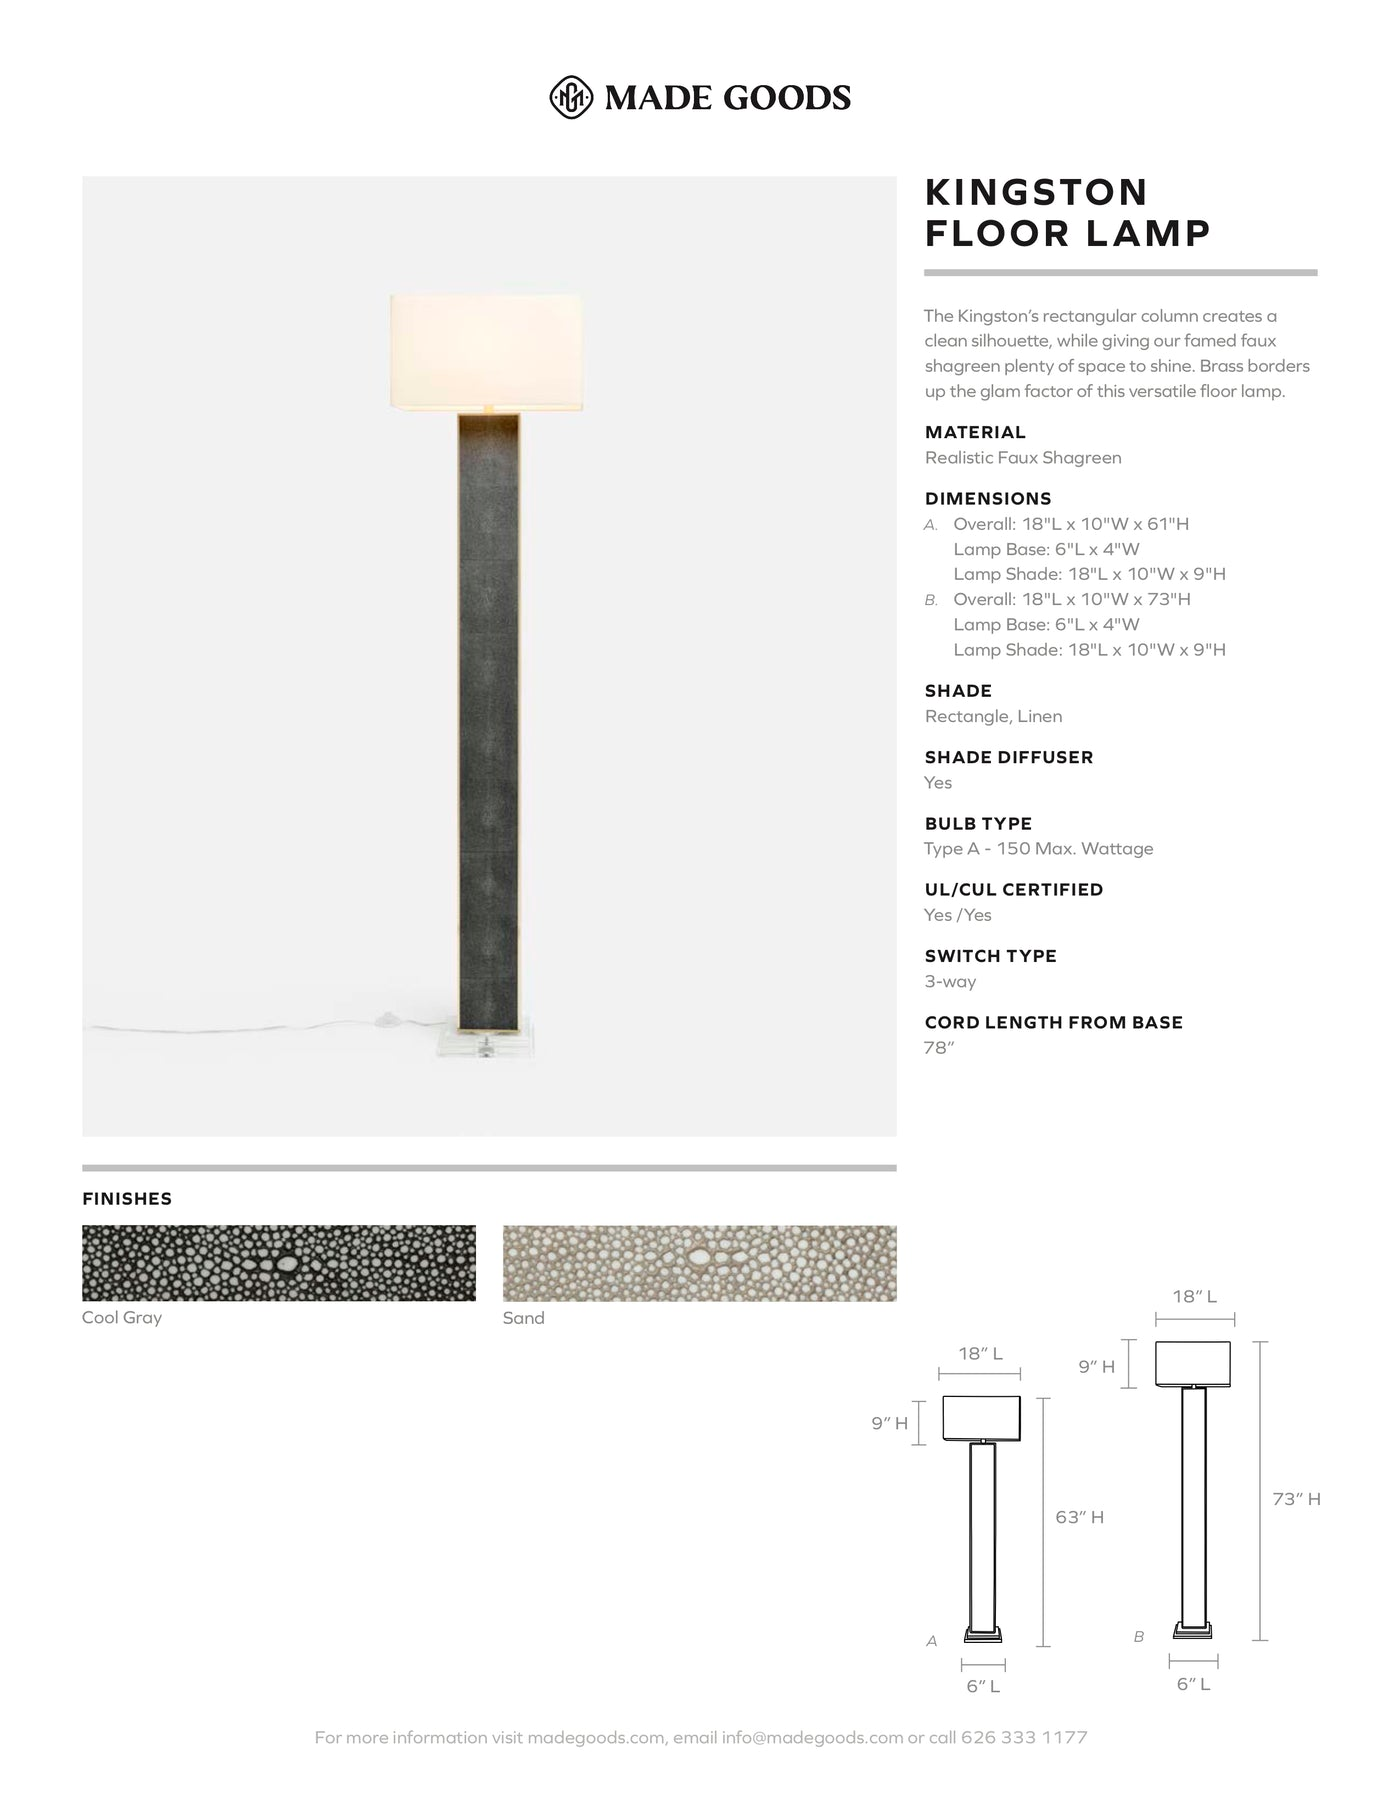 made goods kingston floor lamp realistic faux shagreen tear sheet